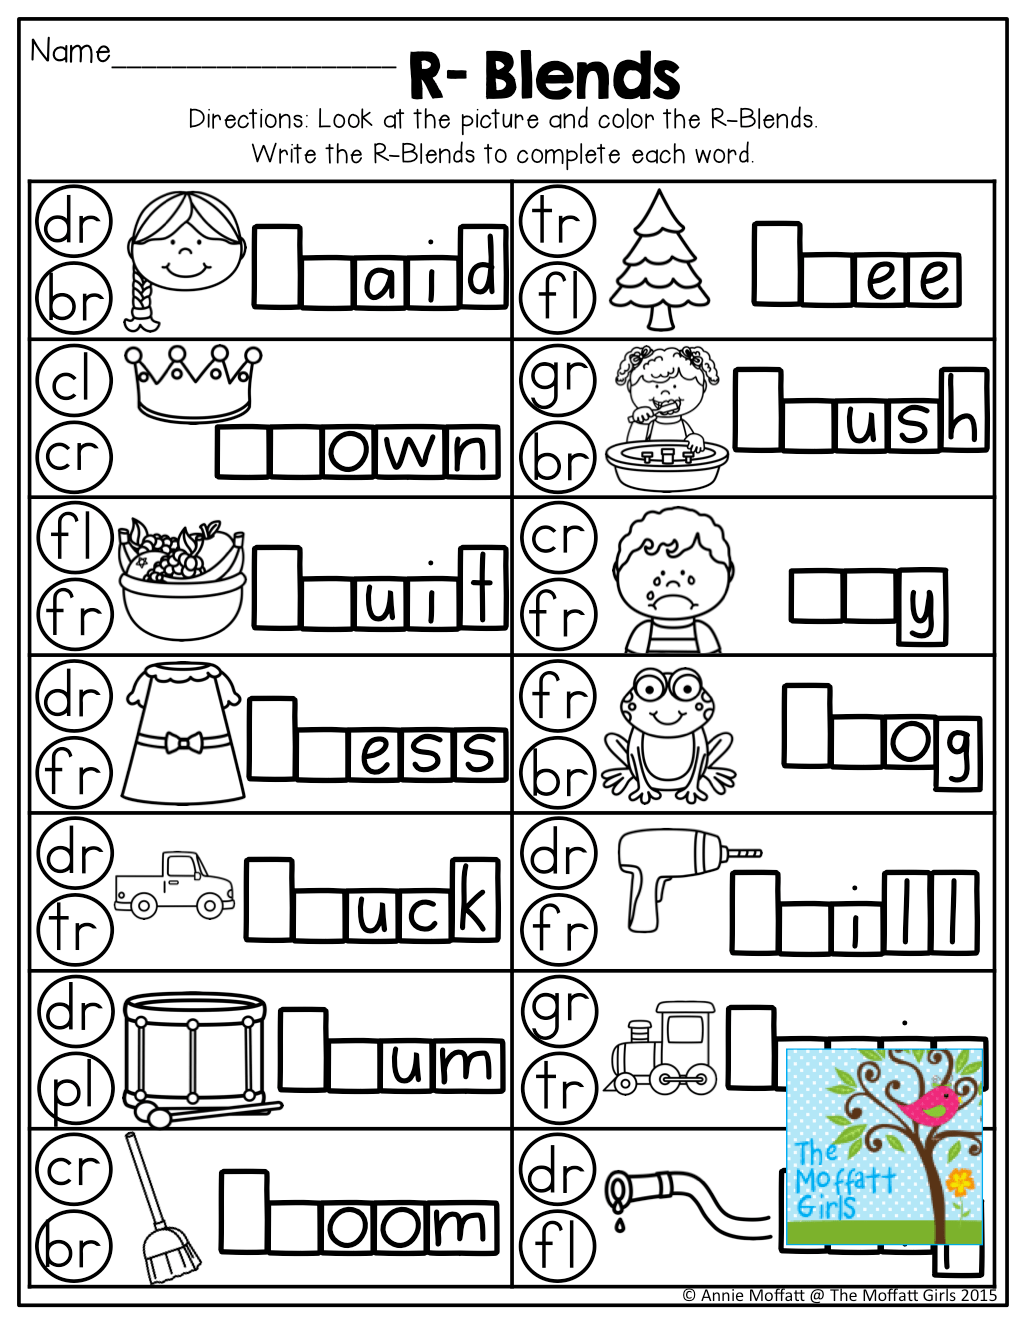 R Blends Great Introduction To Teaching Beginning Blends Just Dot The Beginning Sound And